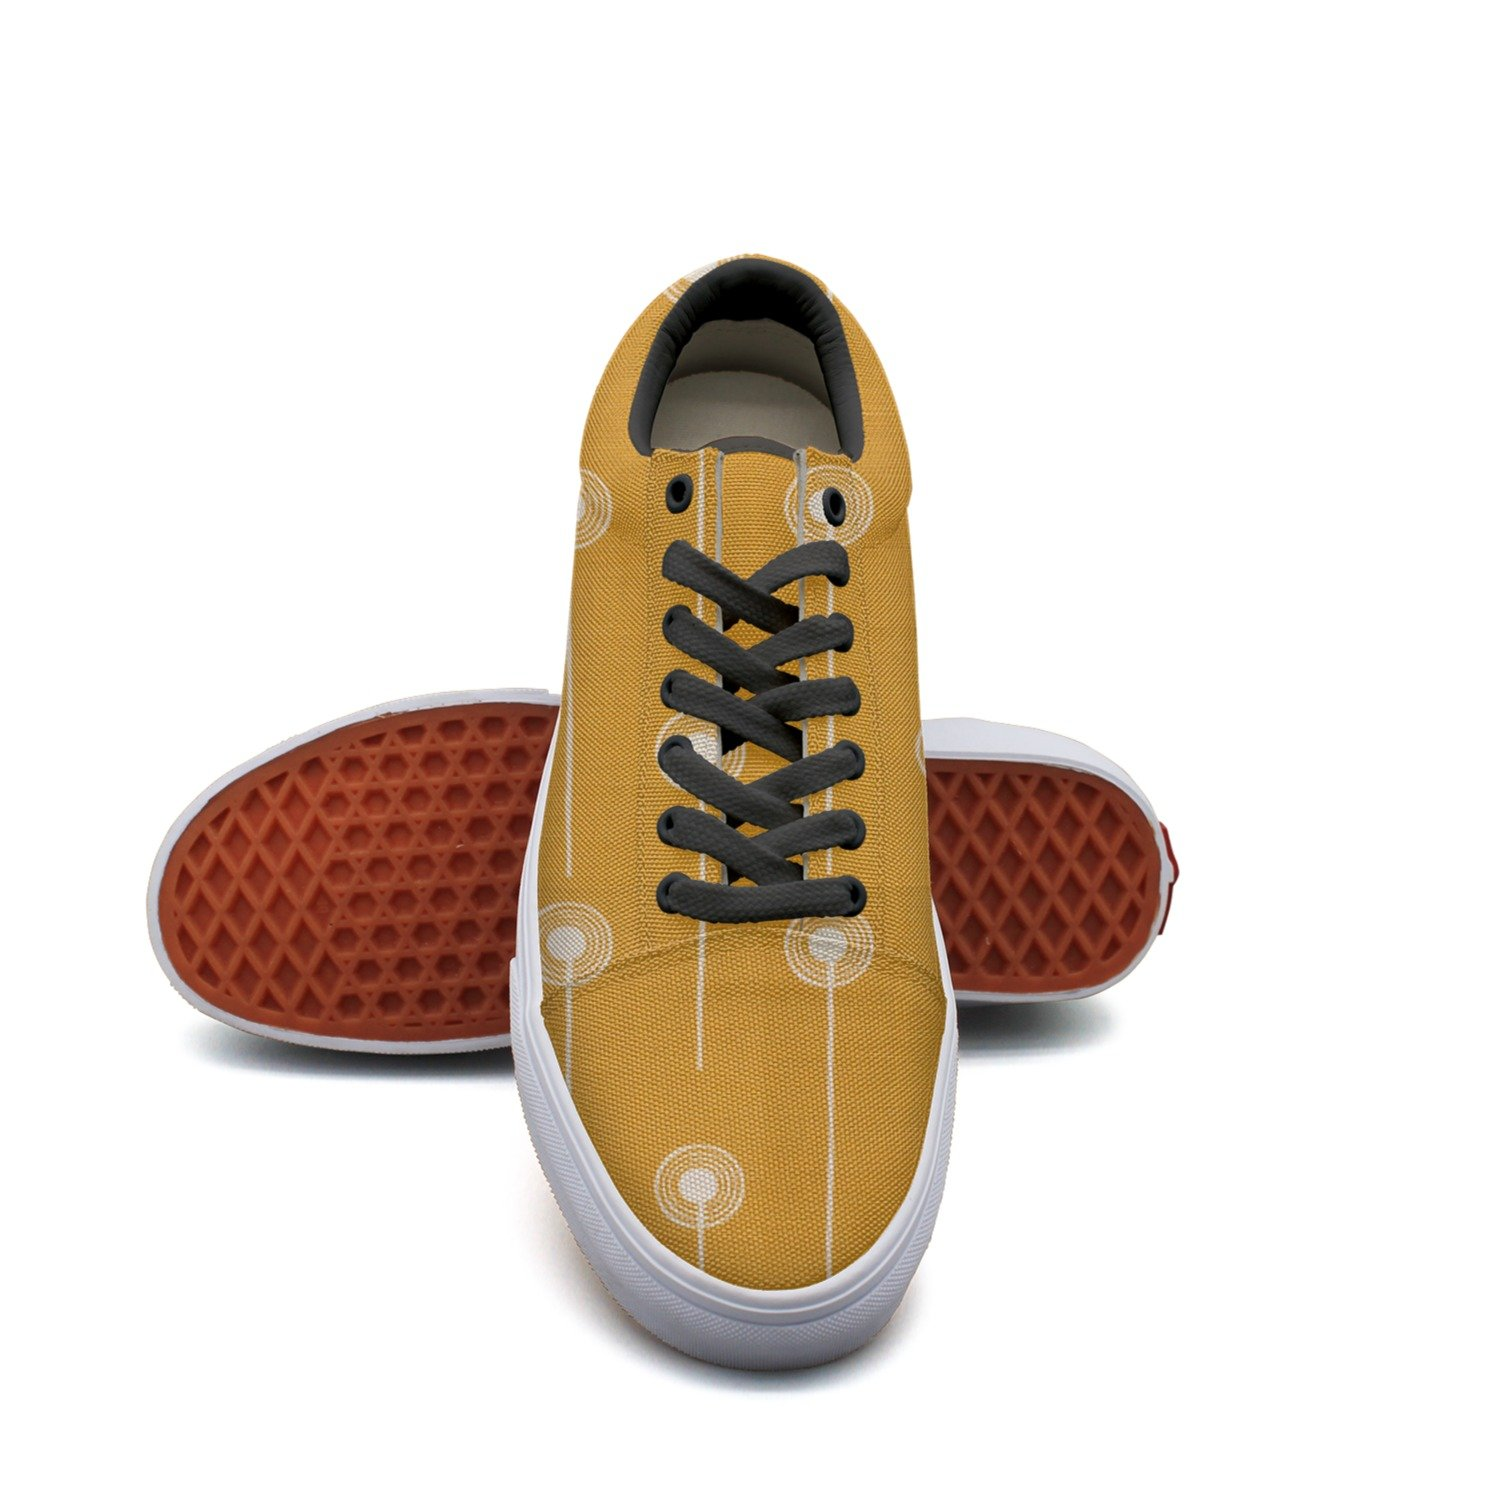 Dandelion Sketch On The Golden Women¡s Casual Shoes Slip-On Sports Nursing Trainers